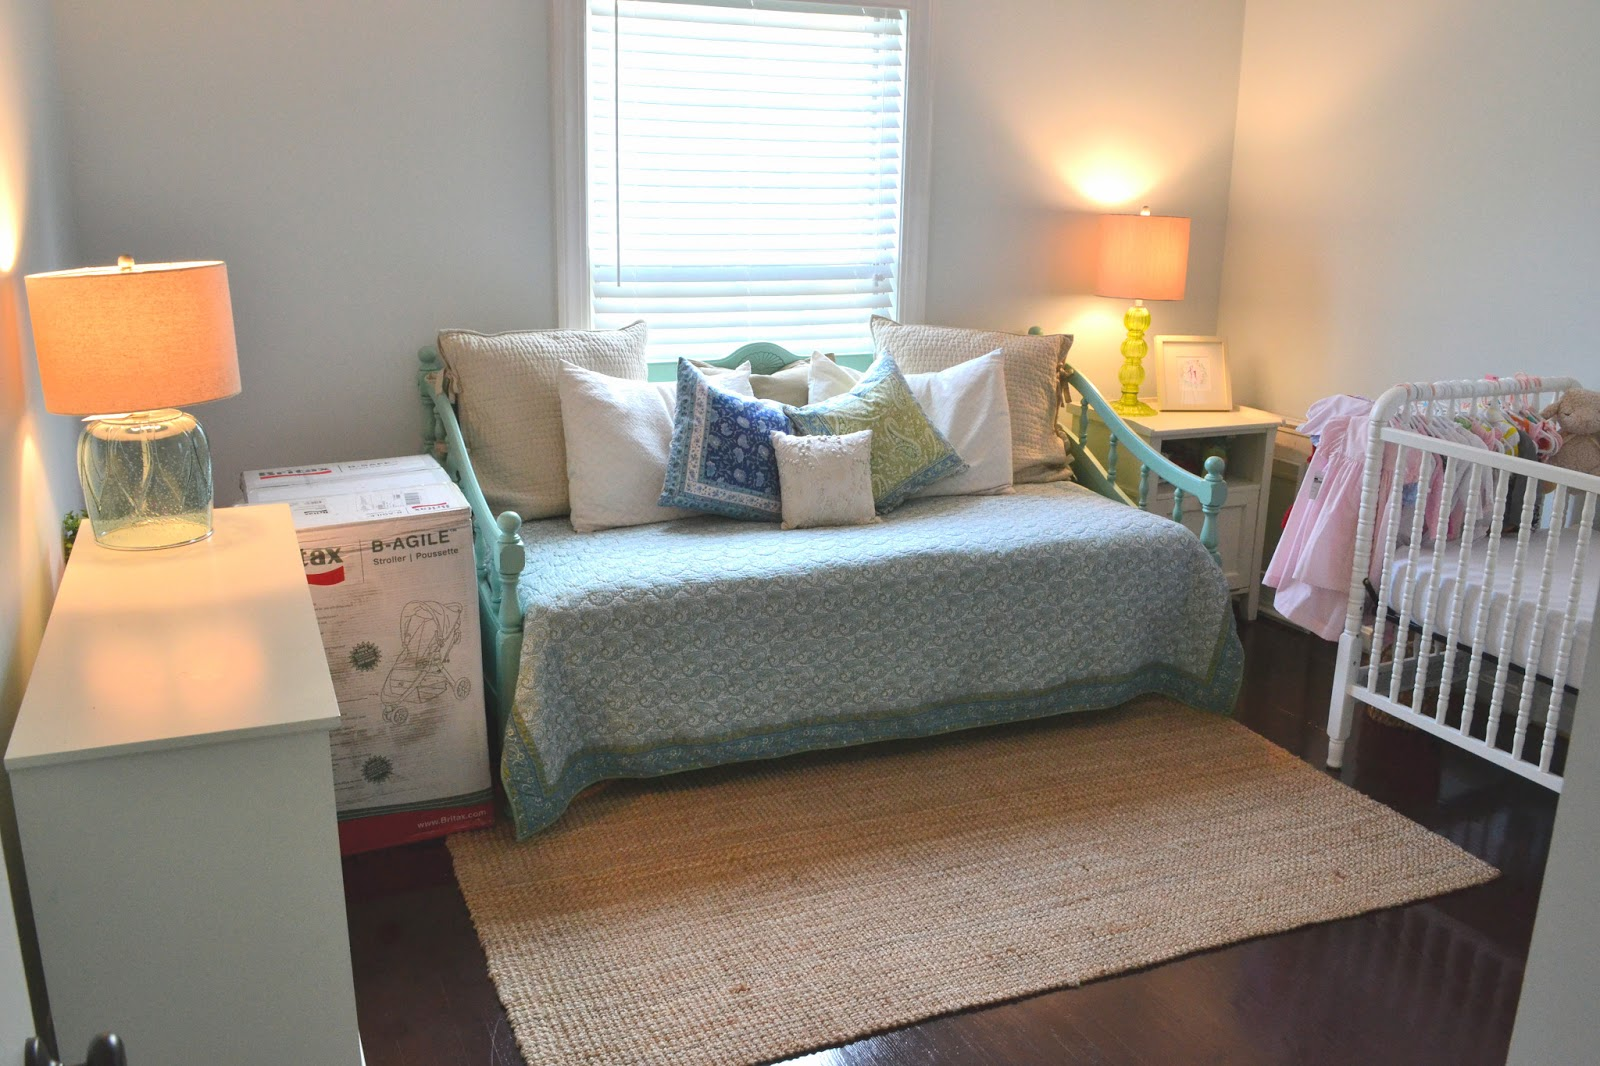 Tj Maxx Air Mattress We chose Valspar's sweet slumber for the wall color. I still need to ...